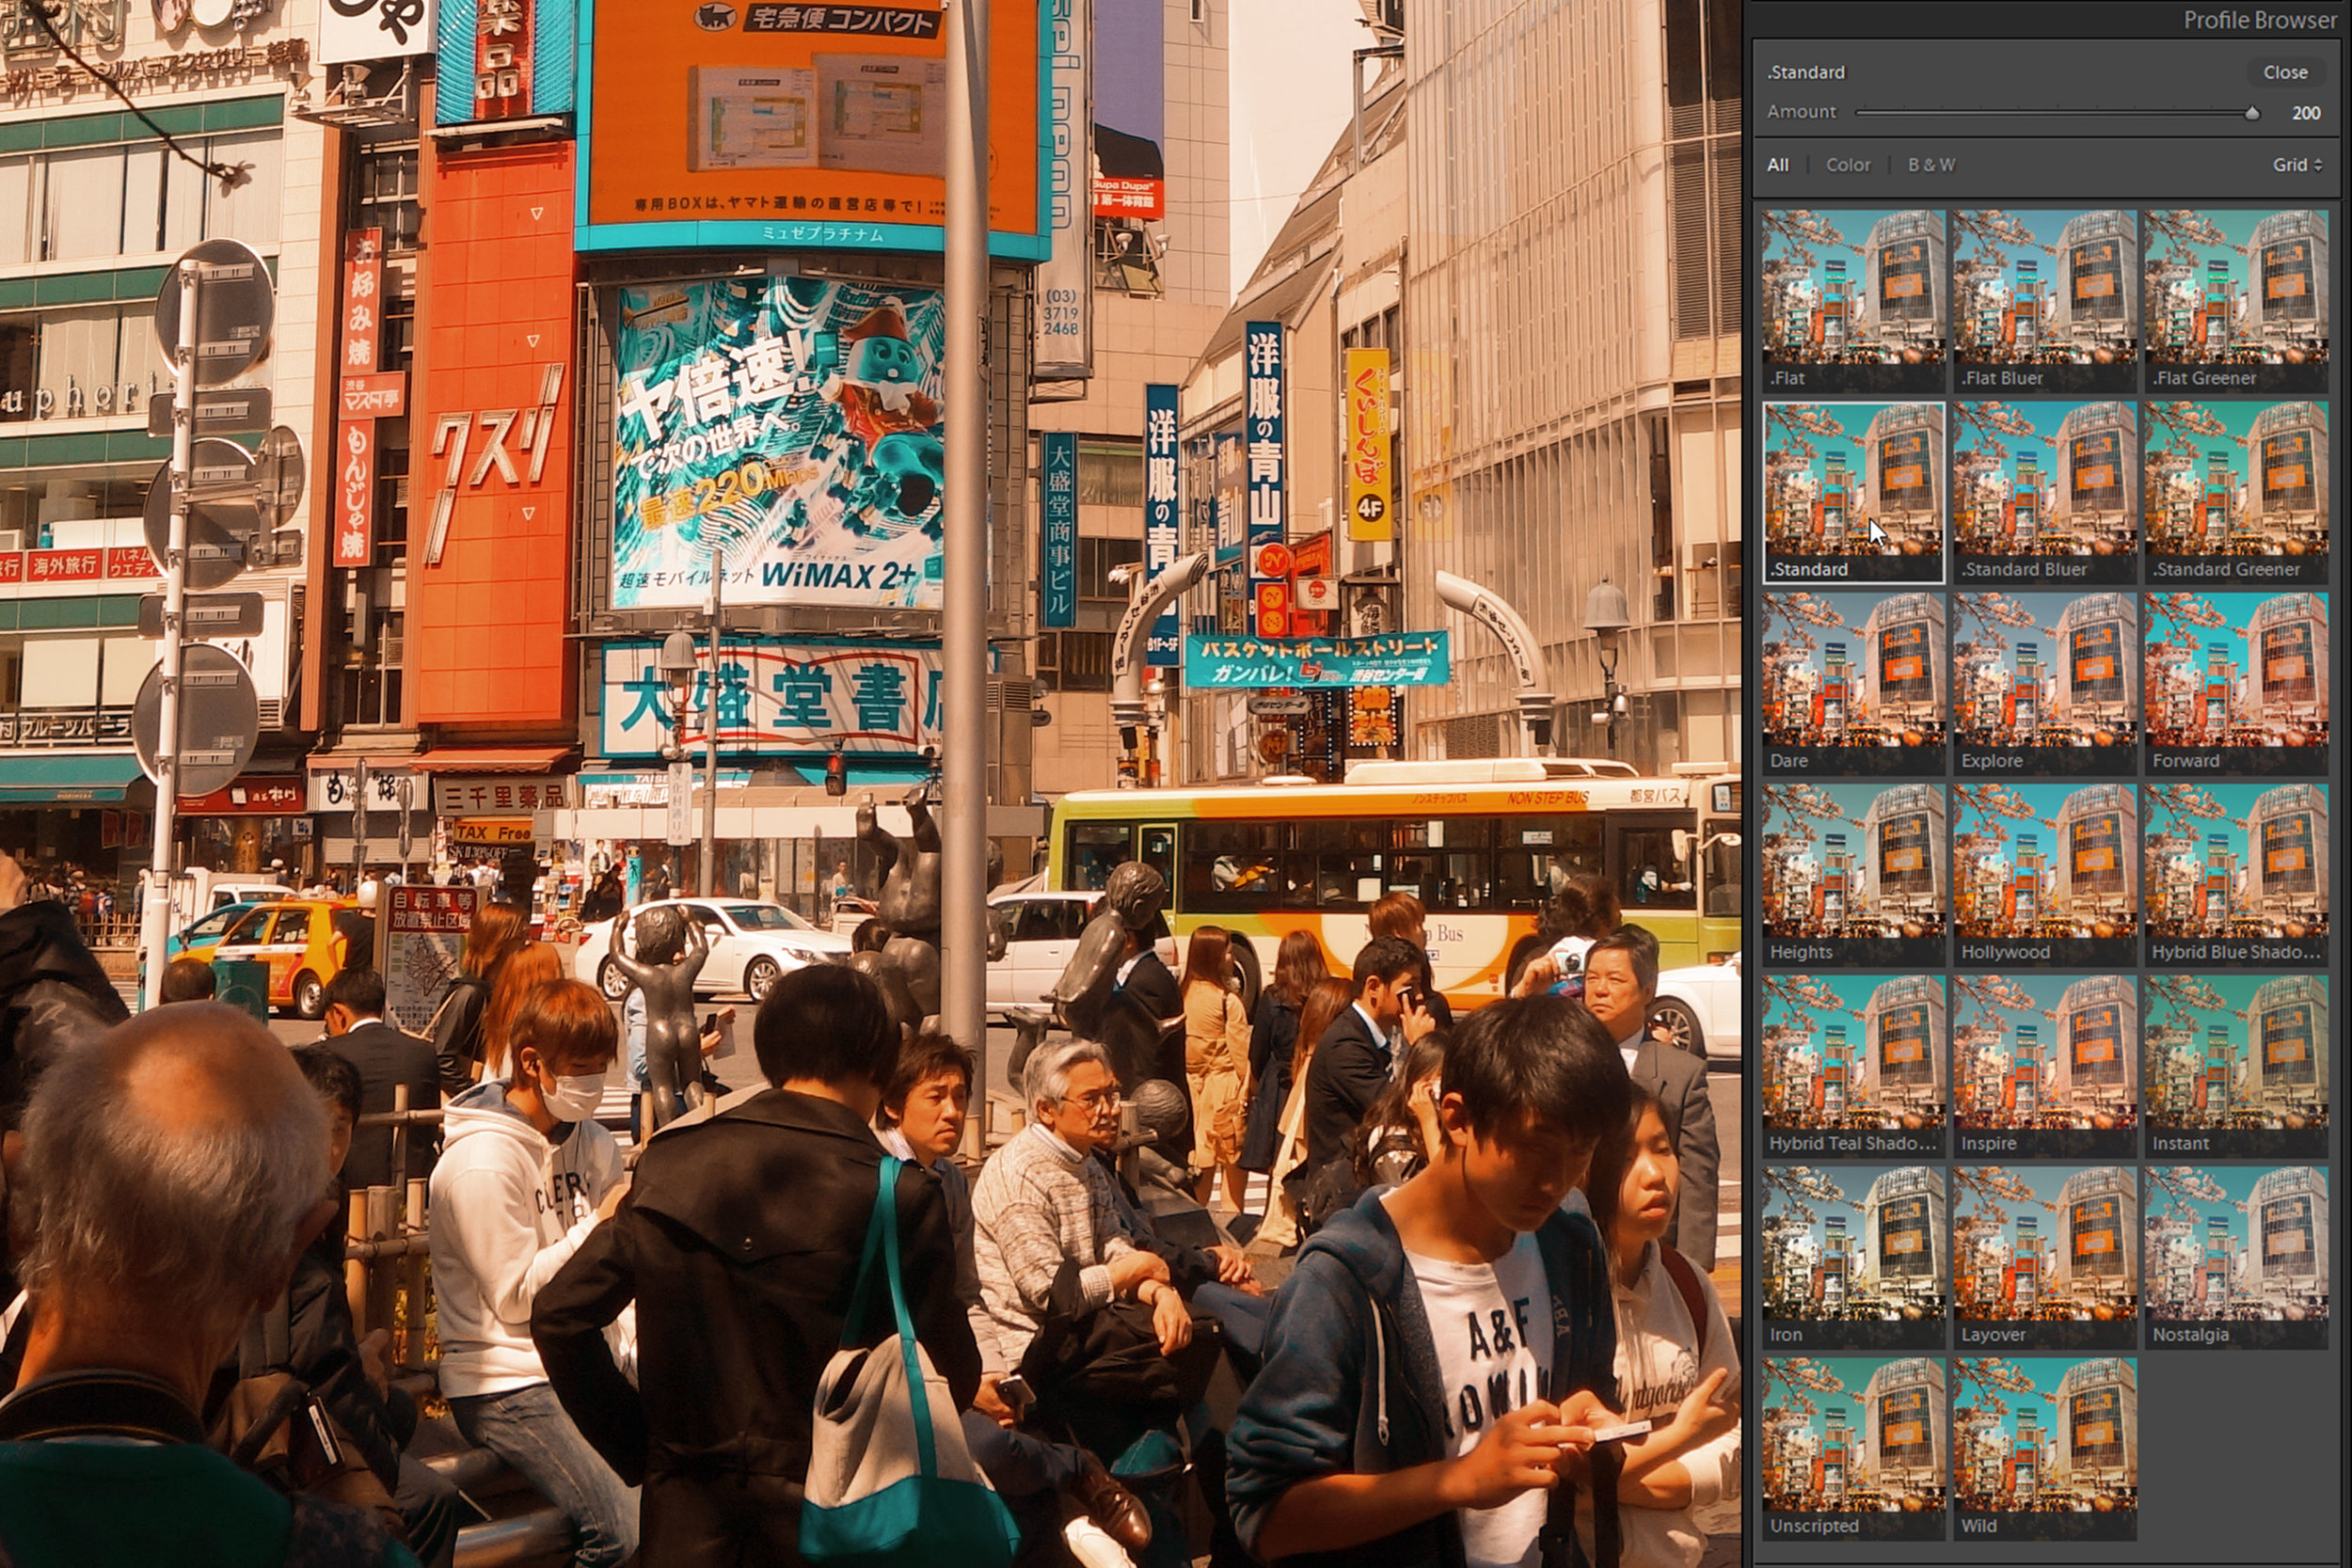 Choose from 20 orange and teal Lightroom profiles. - With the Studio version, you'll get all 20 cinematic orange and teal profiles with opacity support. Also included is a user guide describing each profile and how they affect colors.